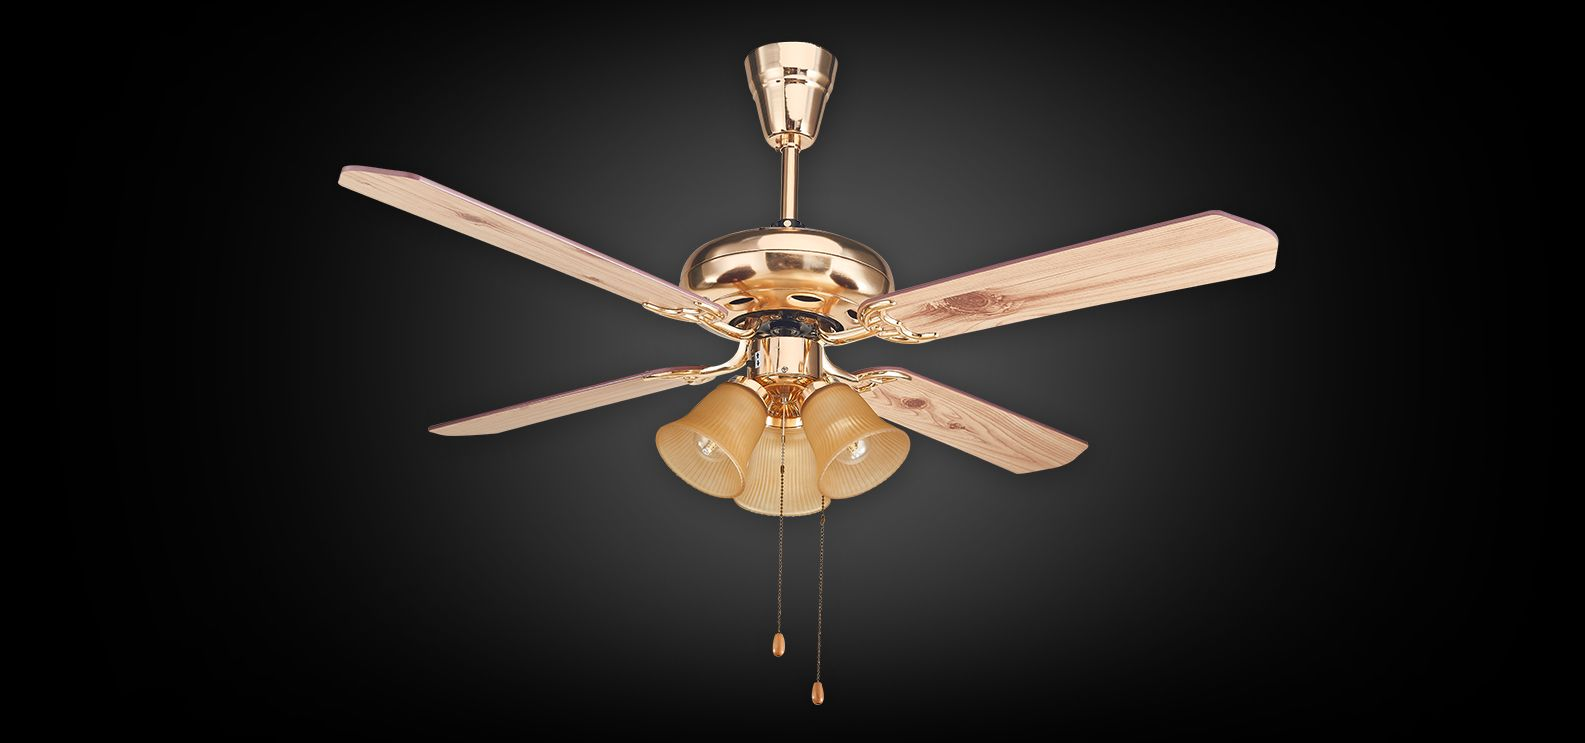 Our Designer Ceiling Fans Are Made In Different Styles Sizes And